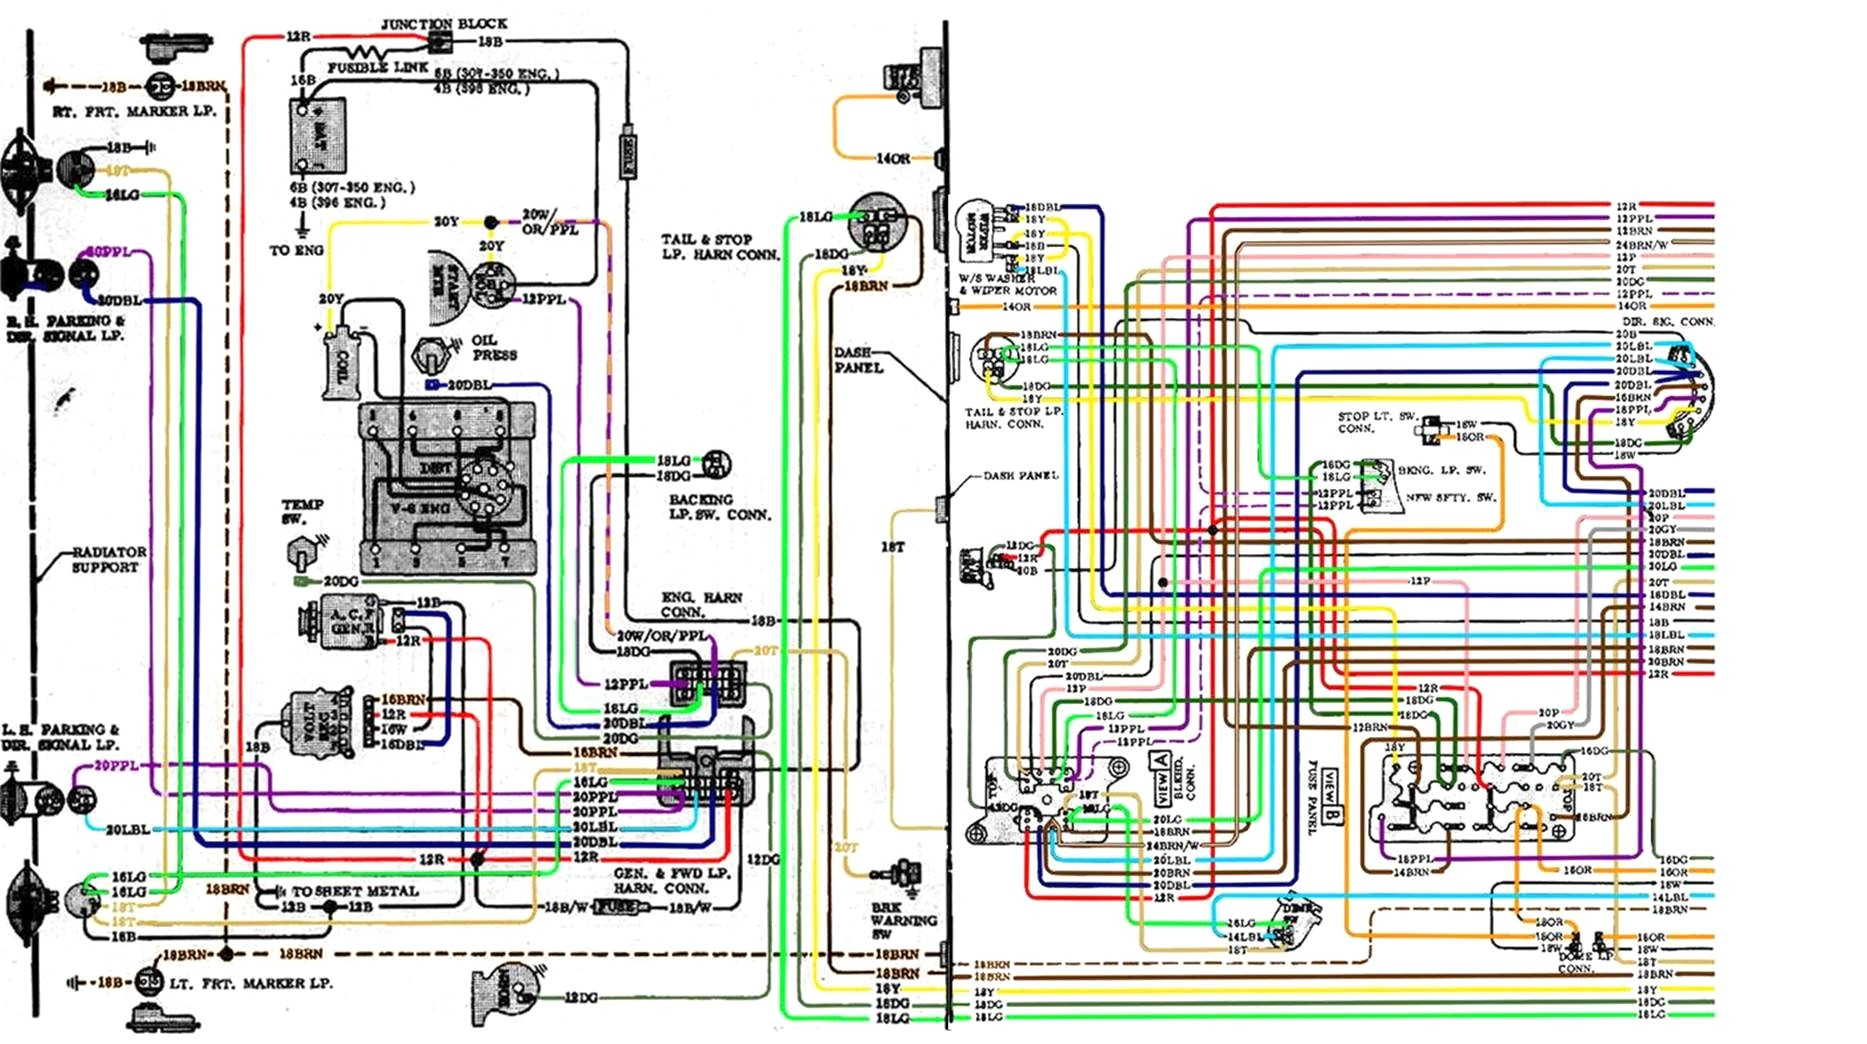 1970 Chevy Nova Wire Harness Diagram | Wiring Diagram on